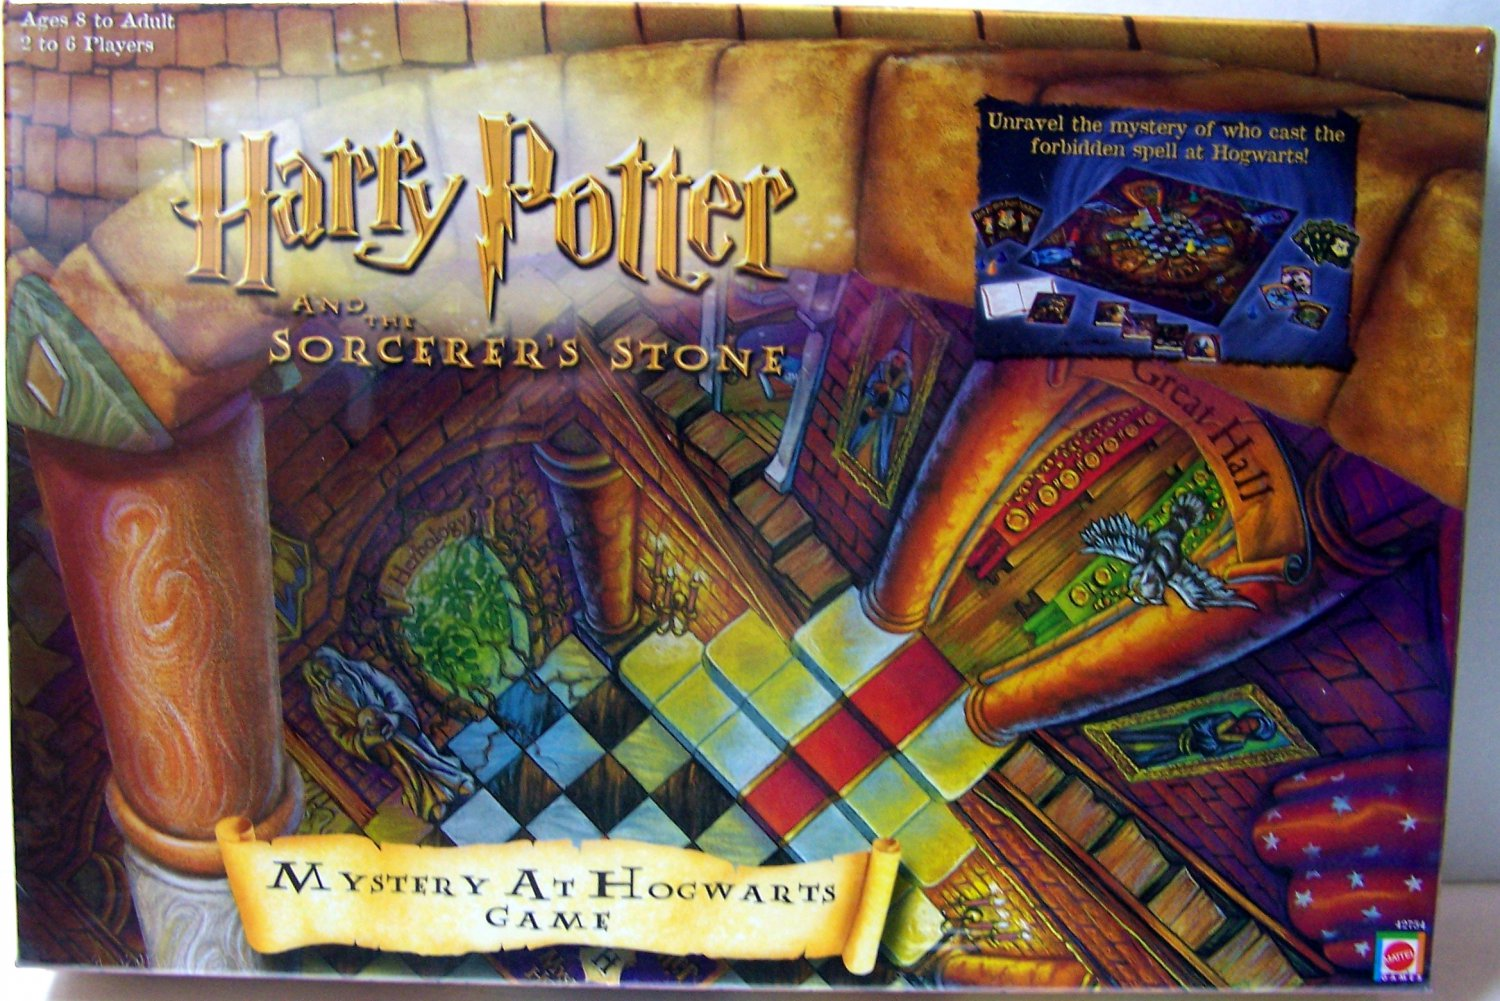 Mattel 2000 HARRY POTTER And The Sorcerer's Stone MYSTERY AT HOGWARTS 1st Game